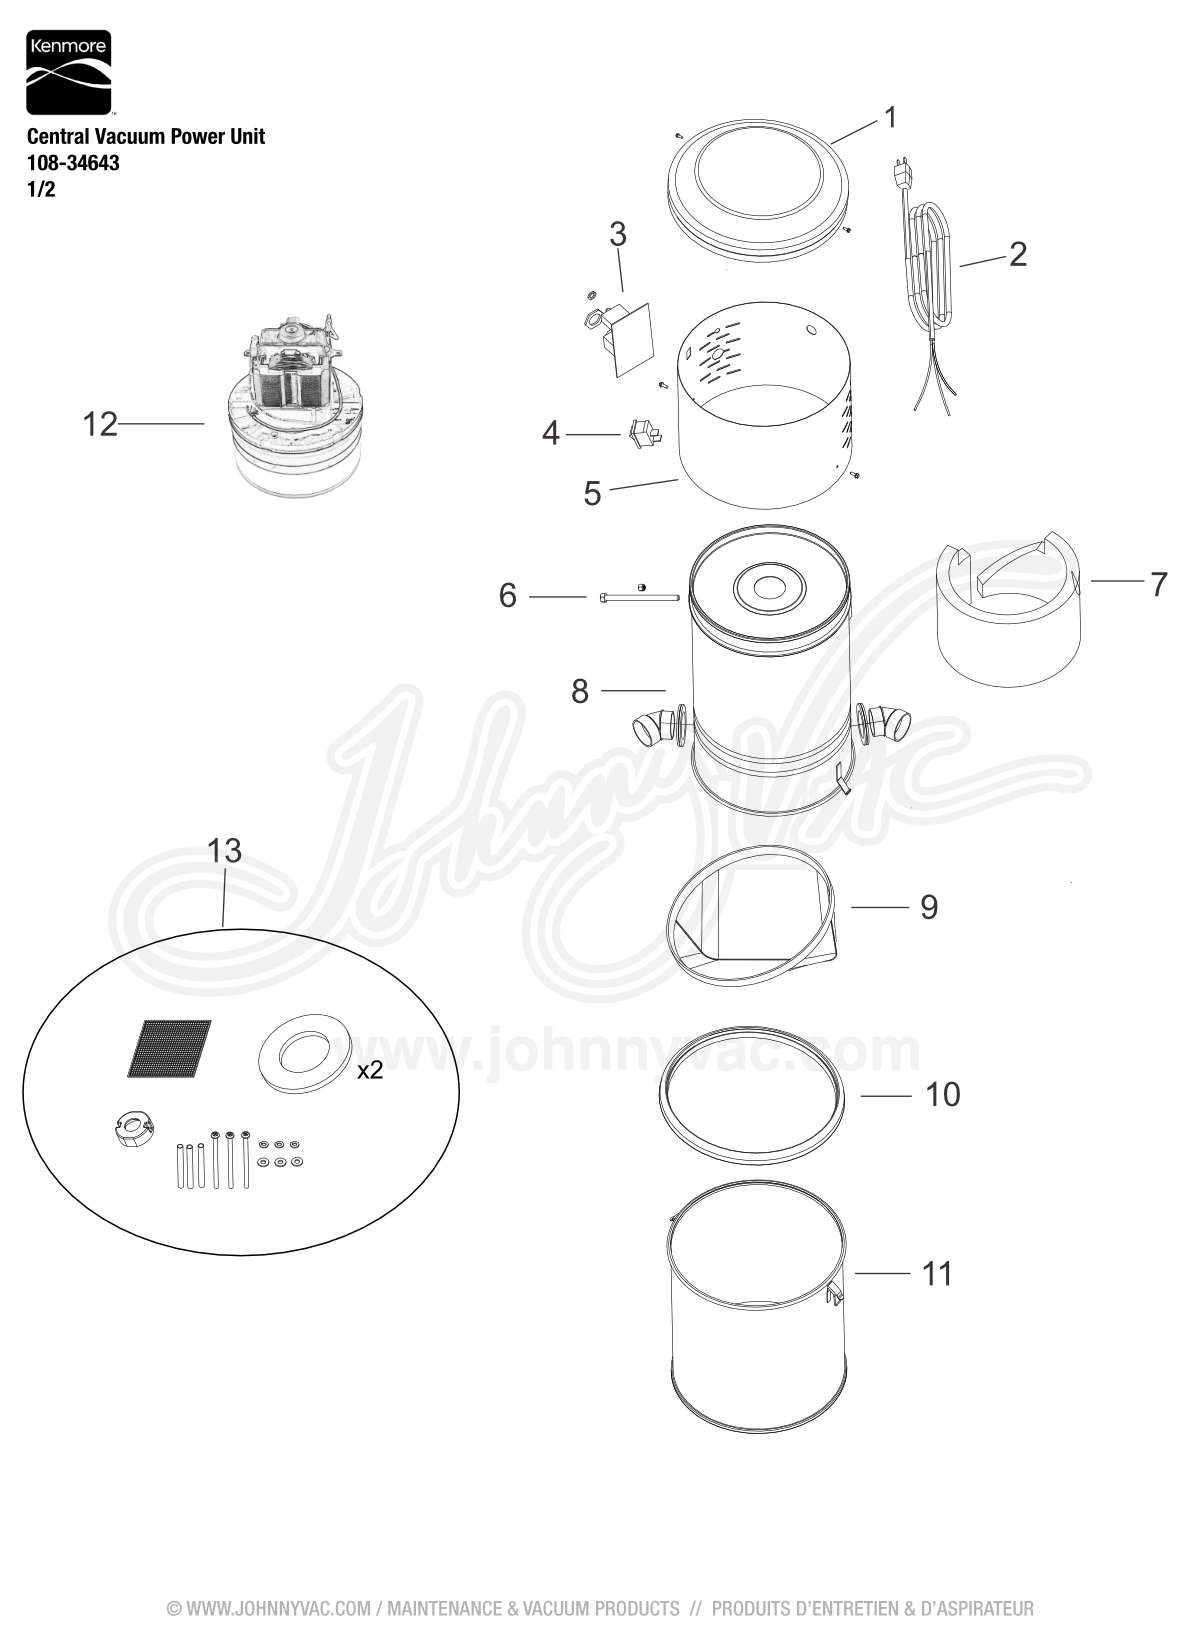 Vacuum Schematic (exploded view) for Kenmore Central Vacuum Power Unit  108-34643,